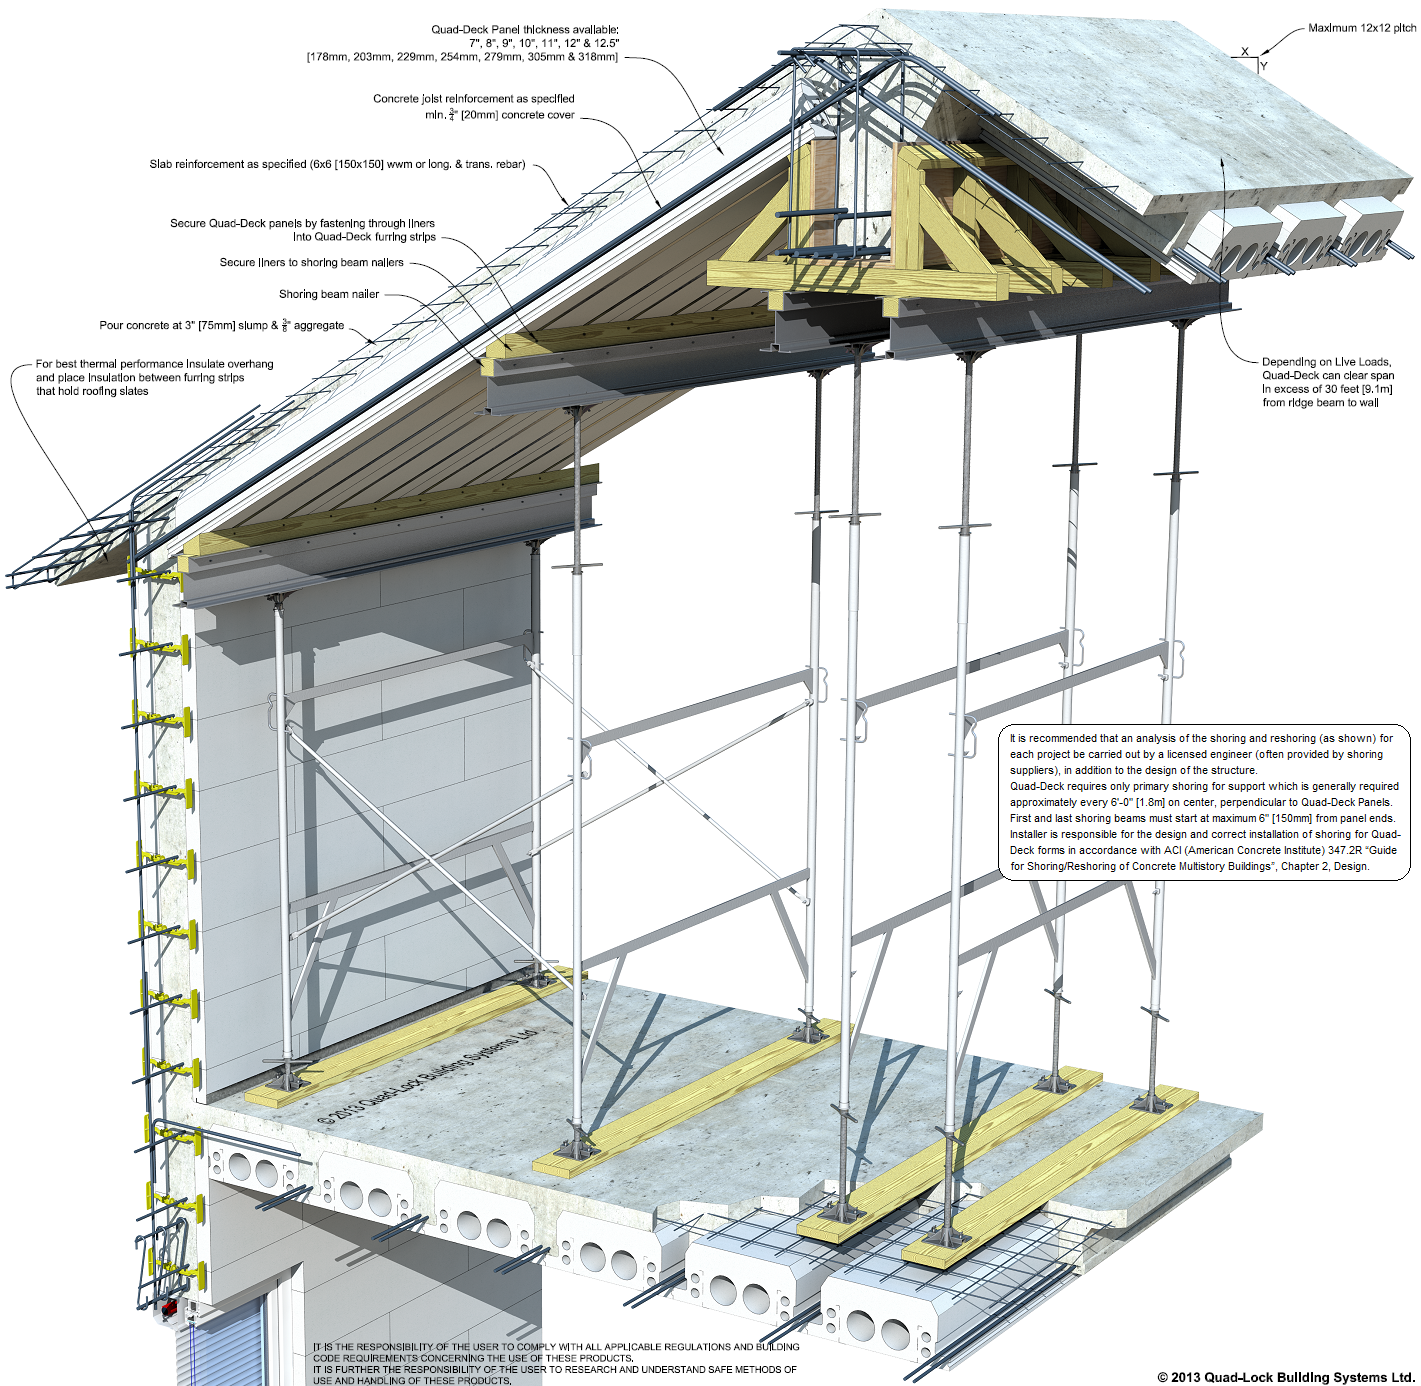 Poured Slab Roof Google Search Deckroofingideas Insulated Concrete Forms Roof Construction Concrete Roof